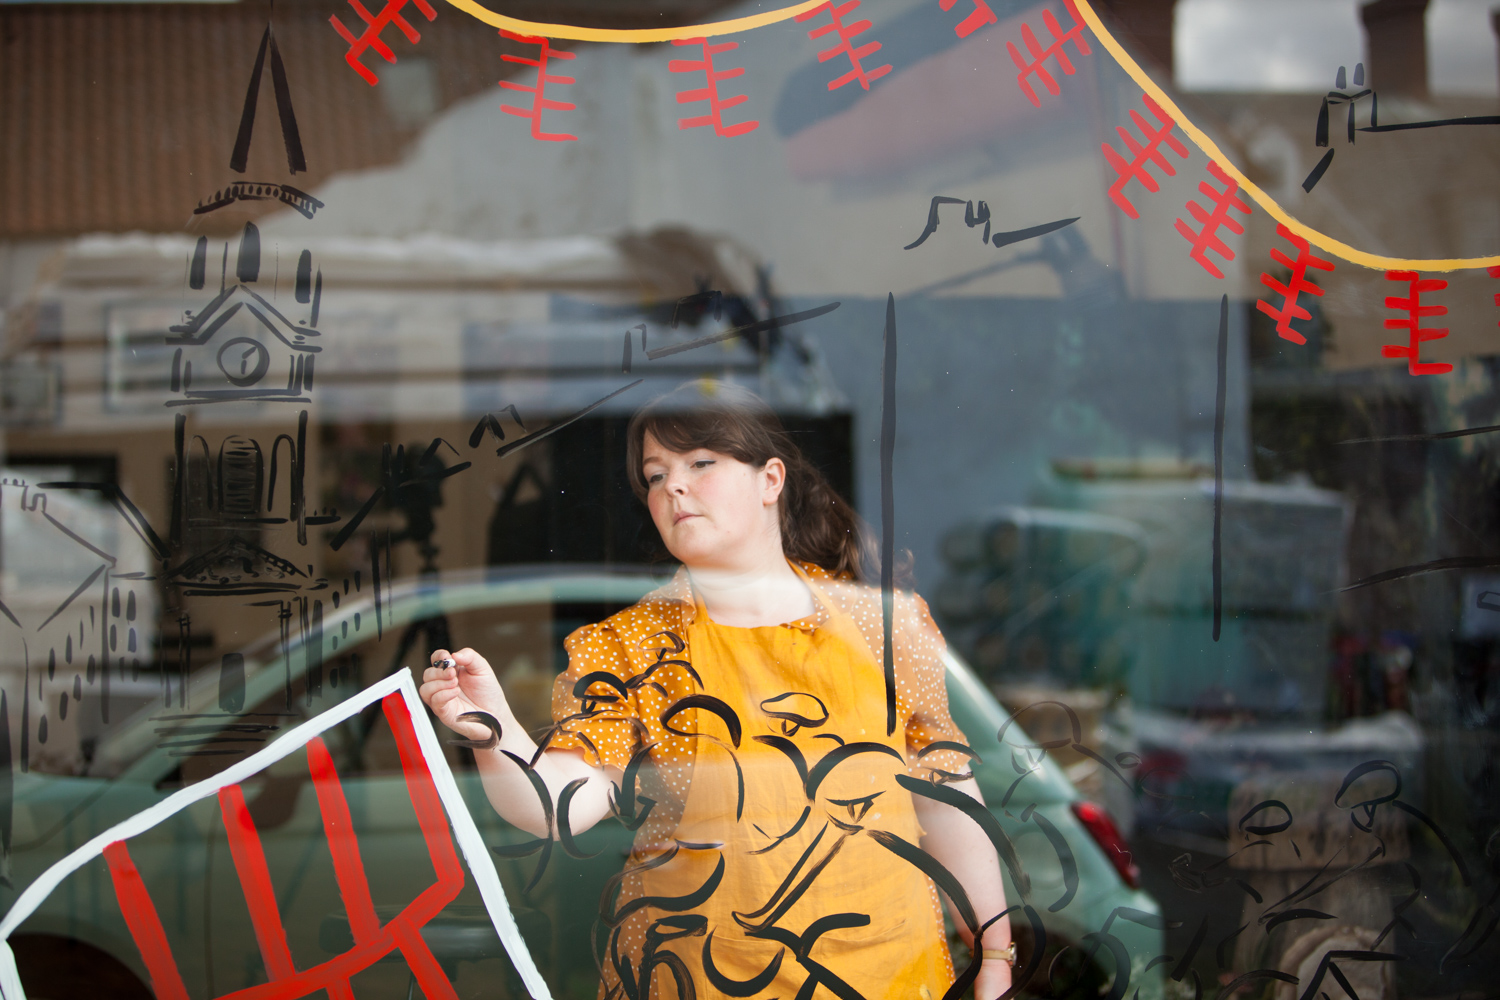 Katie_Draws_Pictorial_Photography_Chappell_Tour_of_Britian_window-painting-live-illustration-photography-graphic-mural-presentation-IMG_6274.jpg